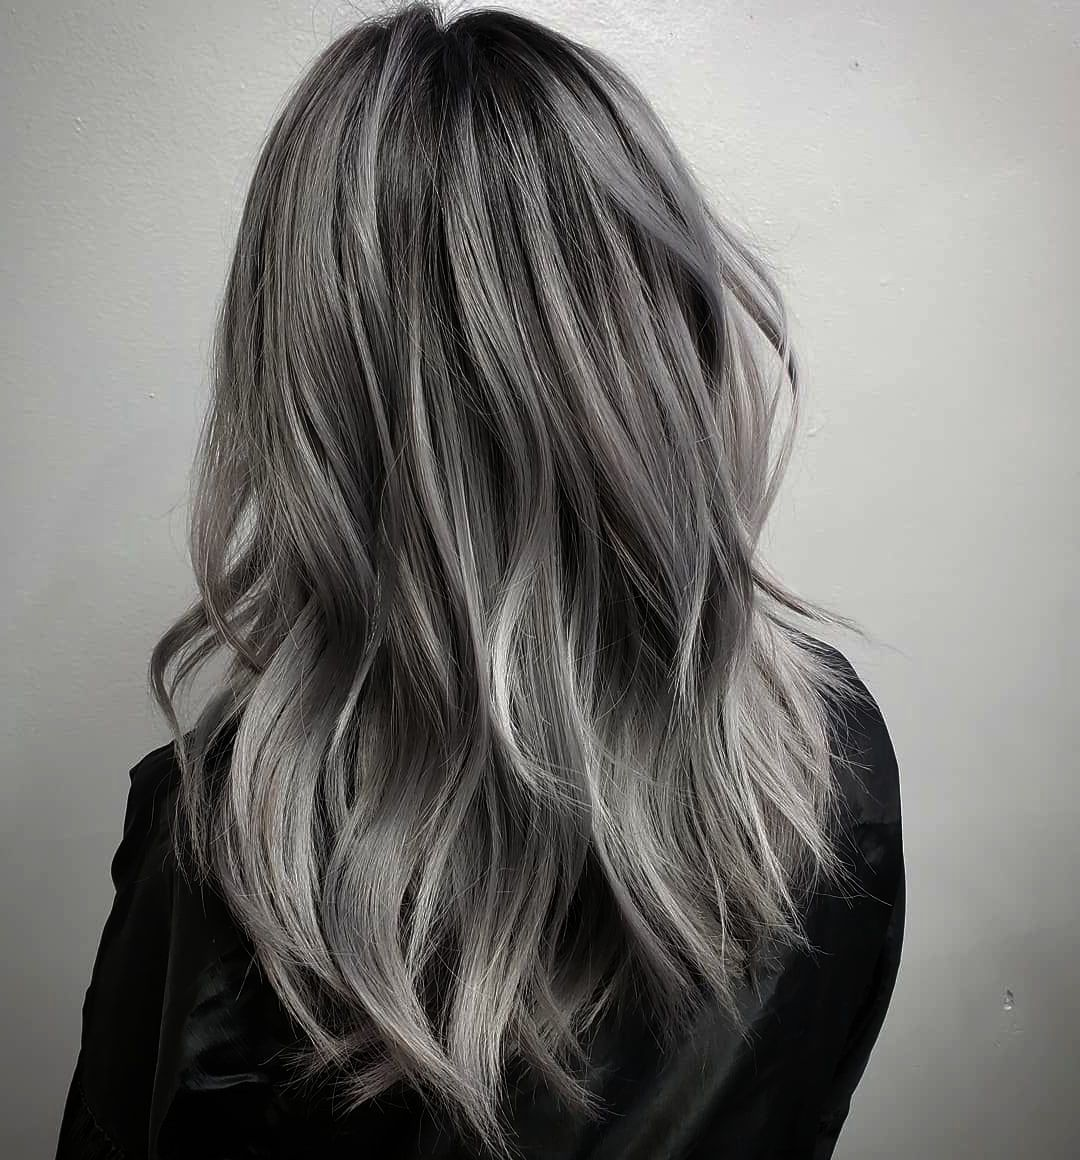 Hairspray Actress That Hair Color Ideas For Fair Skin And Blue Eyes Much Red Hair Color Ideas For Brown Skin Grey Ombre Hair Silver Hair Color Ombre Hair Color